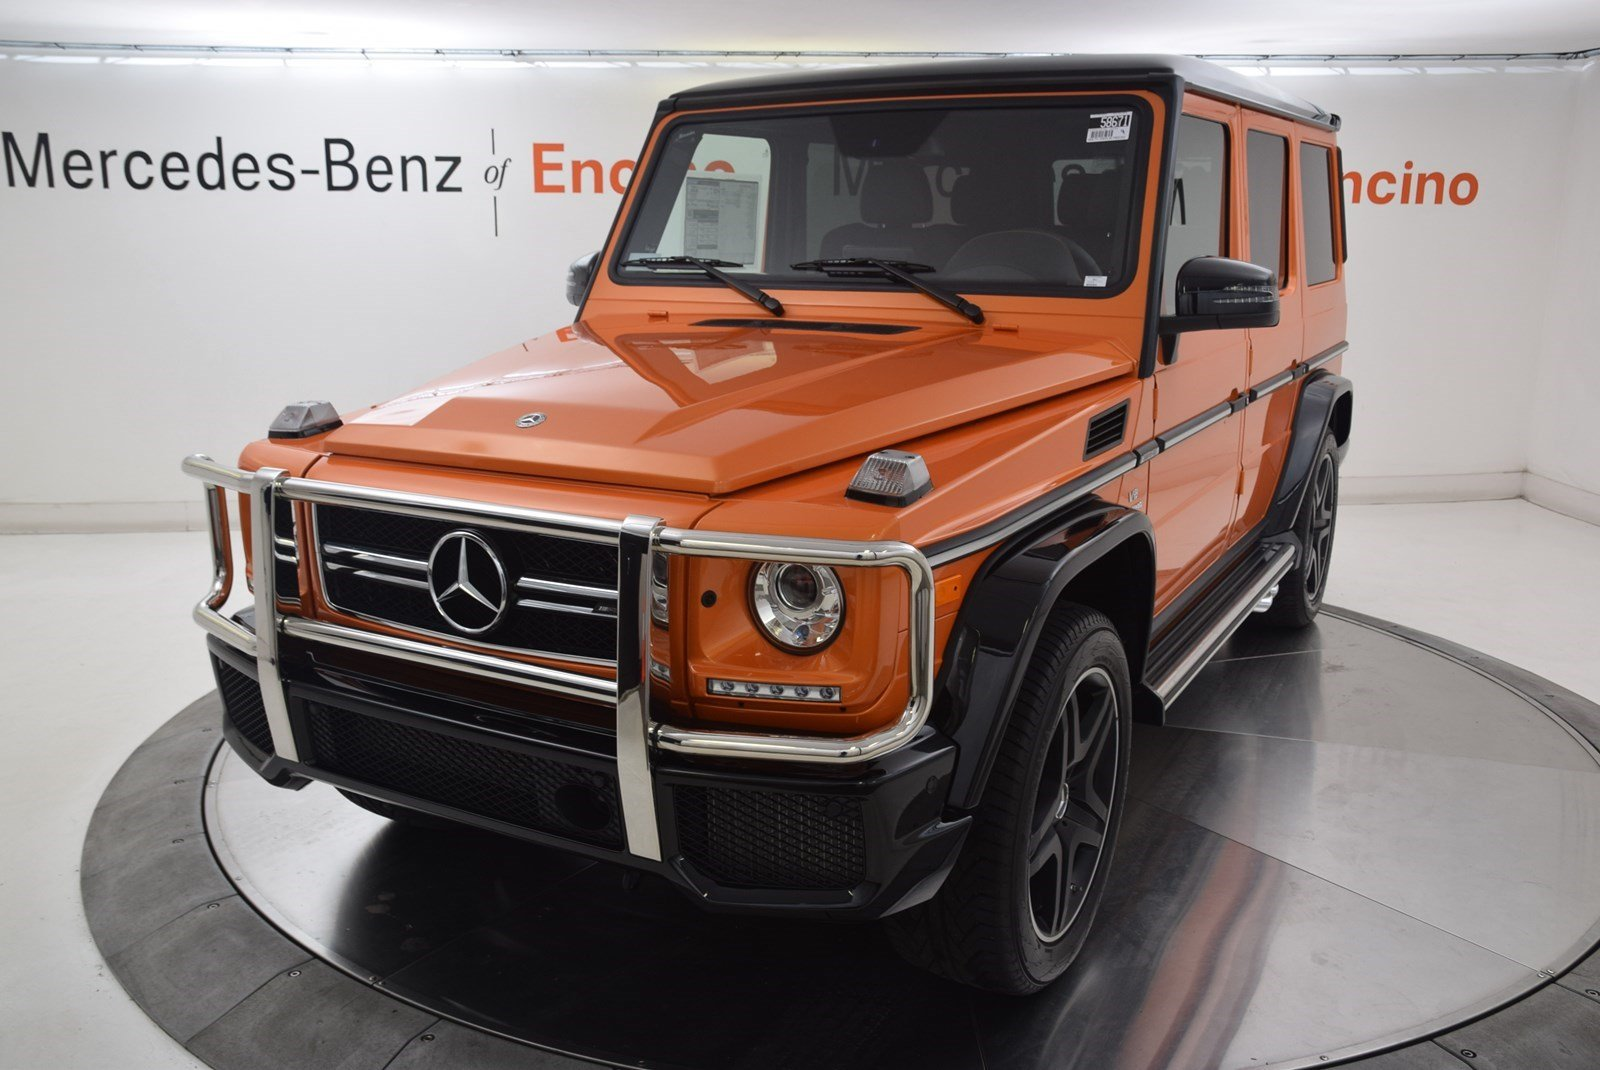 new 2018 mercedes benz g class amg g 63 suv suv in encino 58671 mercedes benz of encino. Black Bedroom Furniture Sets. Home Design Ideas